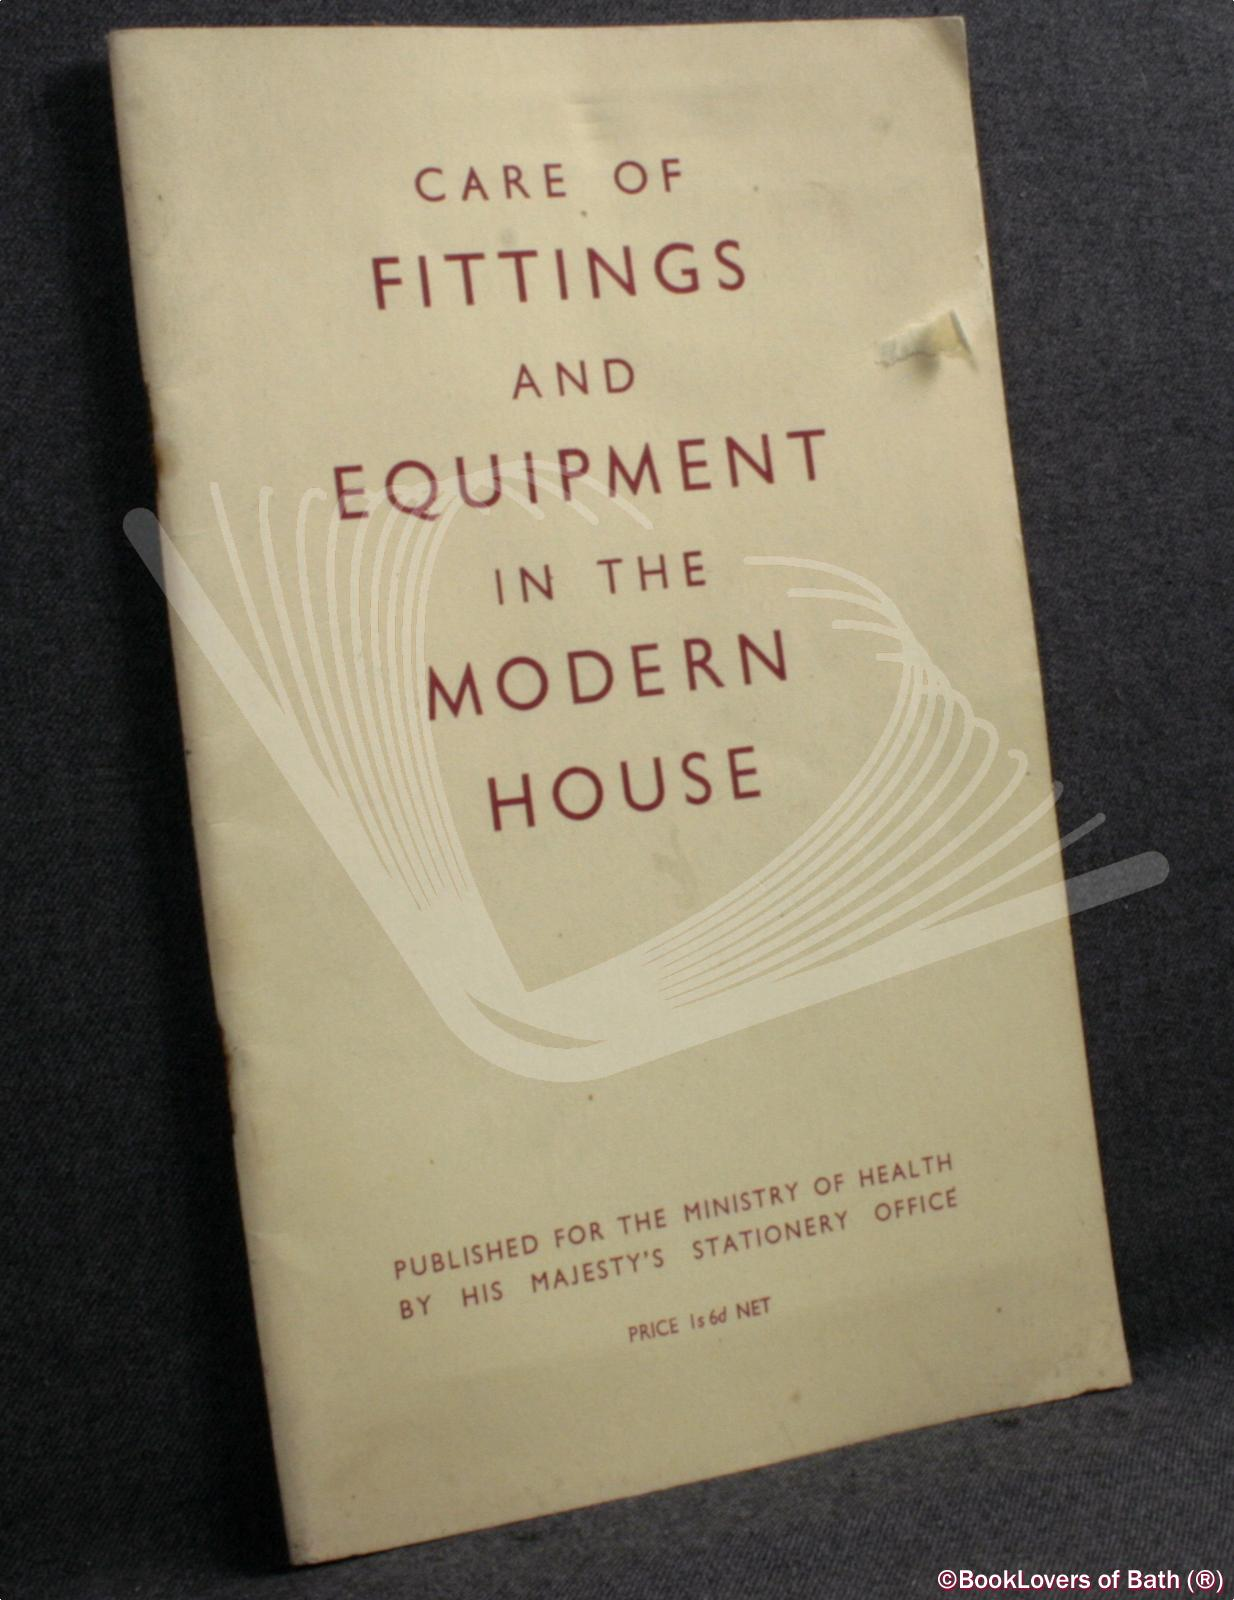 The Care and Maintenance of Fittings and Equipment in the Modern House: Report of a Sub-Committee of the Central Housing Advisory Committee - Anon.